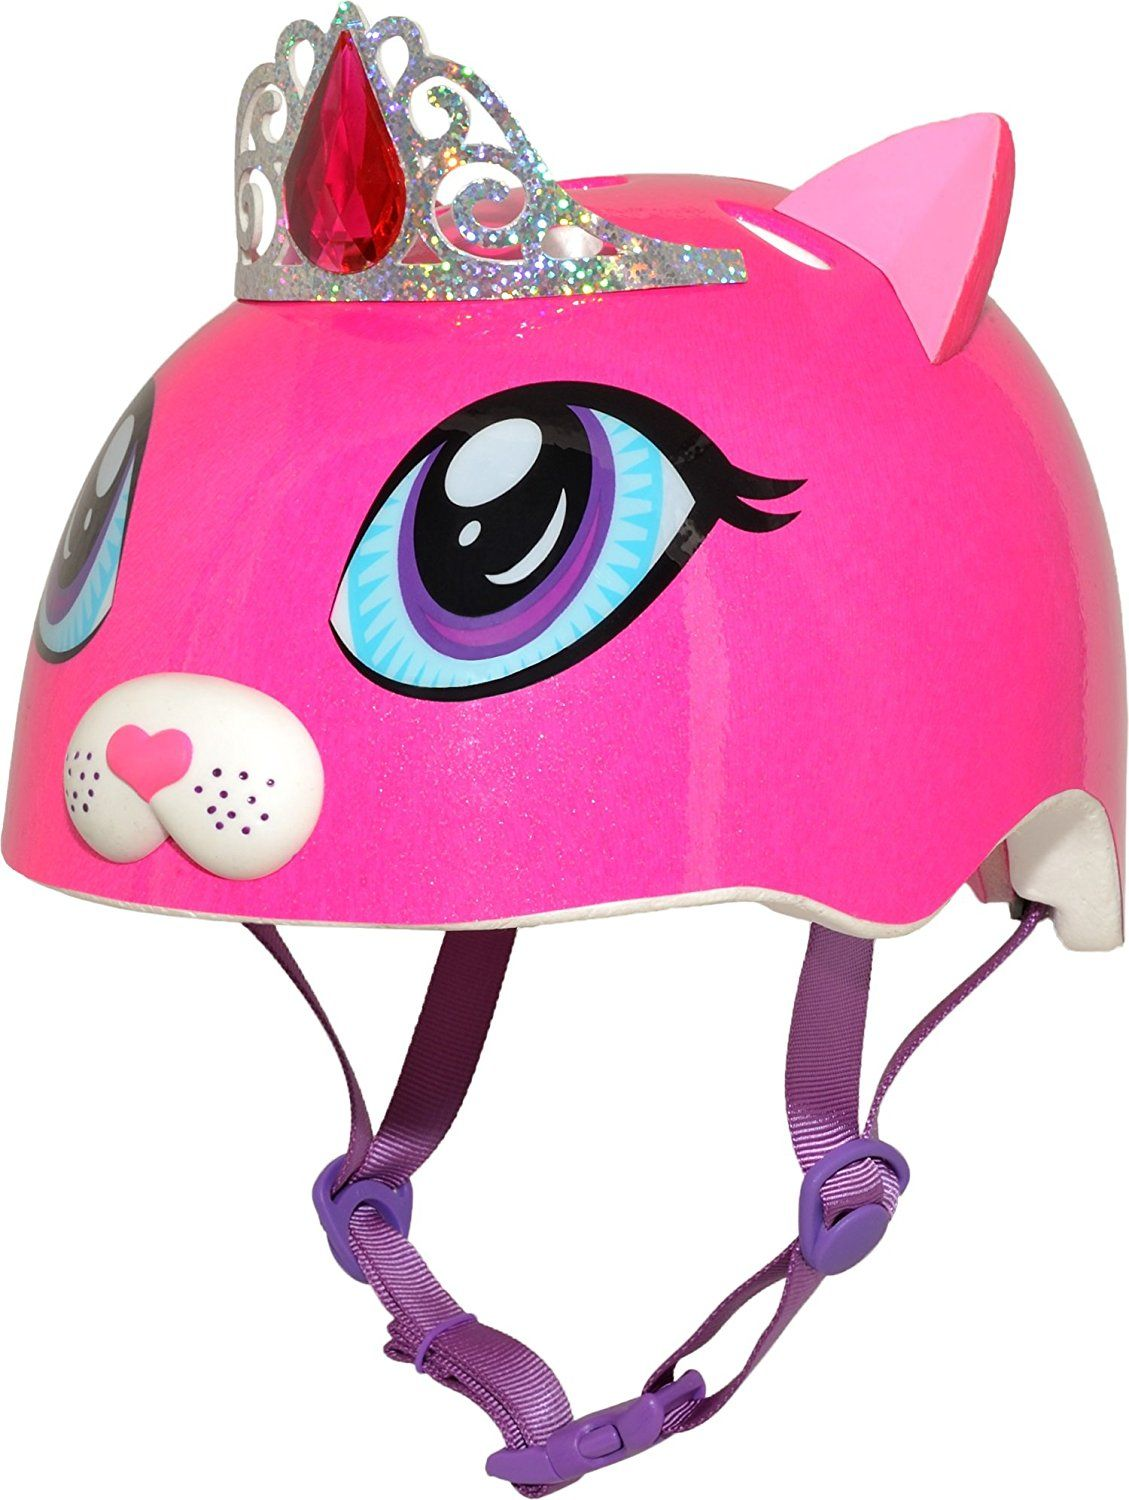 47e8a0187cf Amazon.com : Raskullz Duchess Meow Girls Bike Helmet : Sports & Outdoors